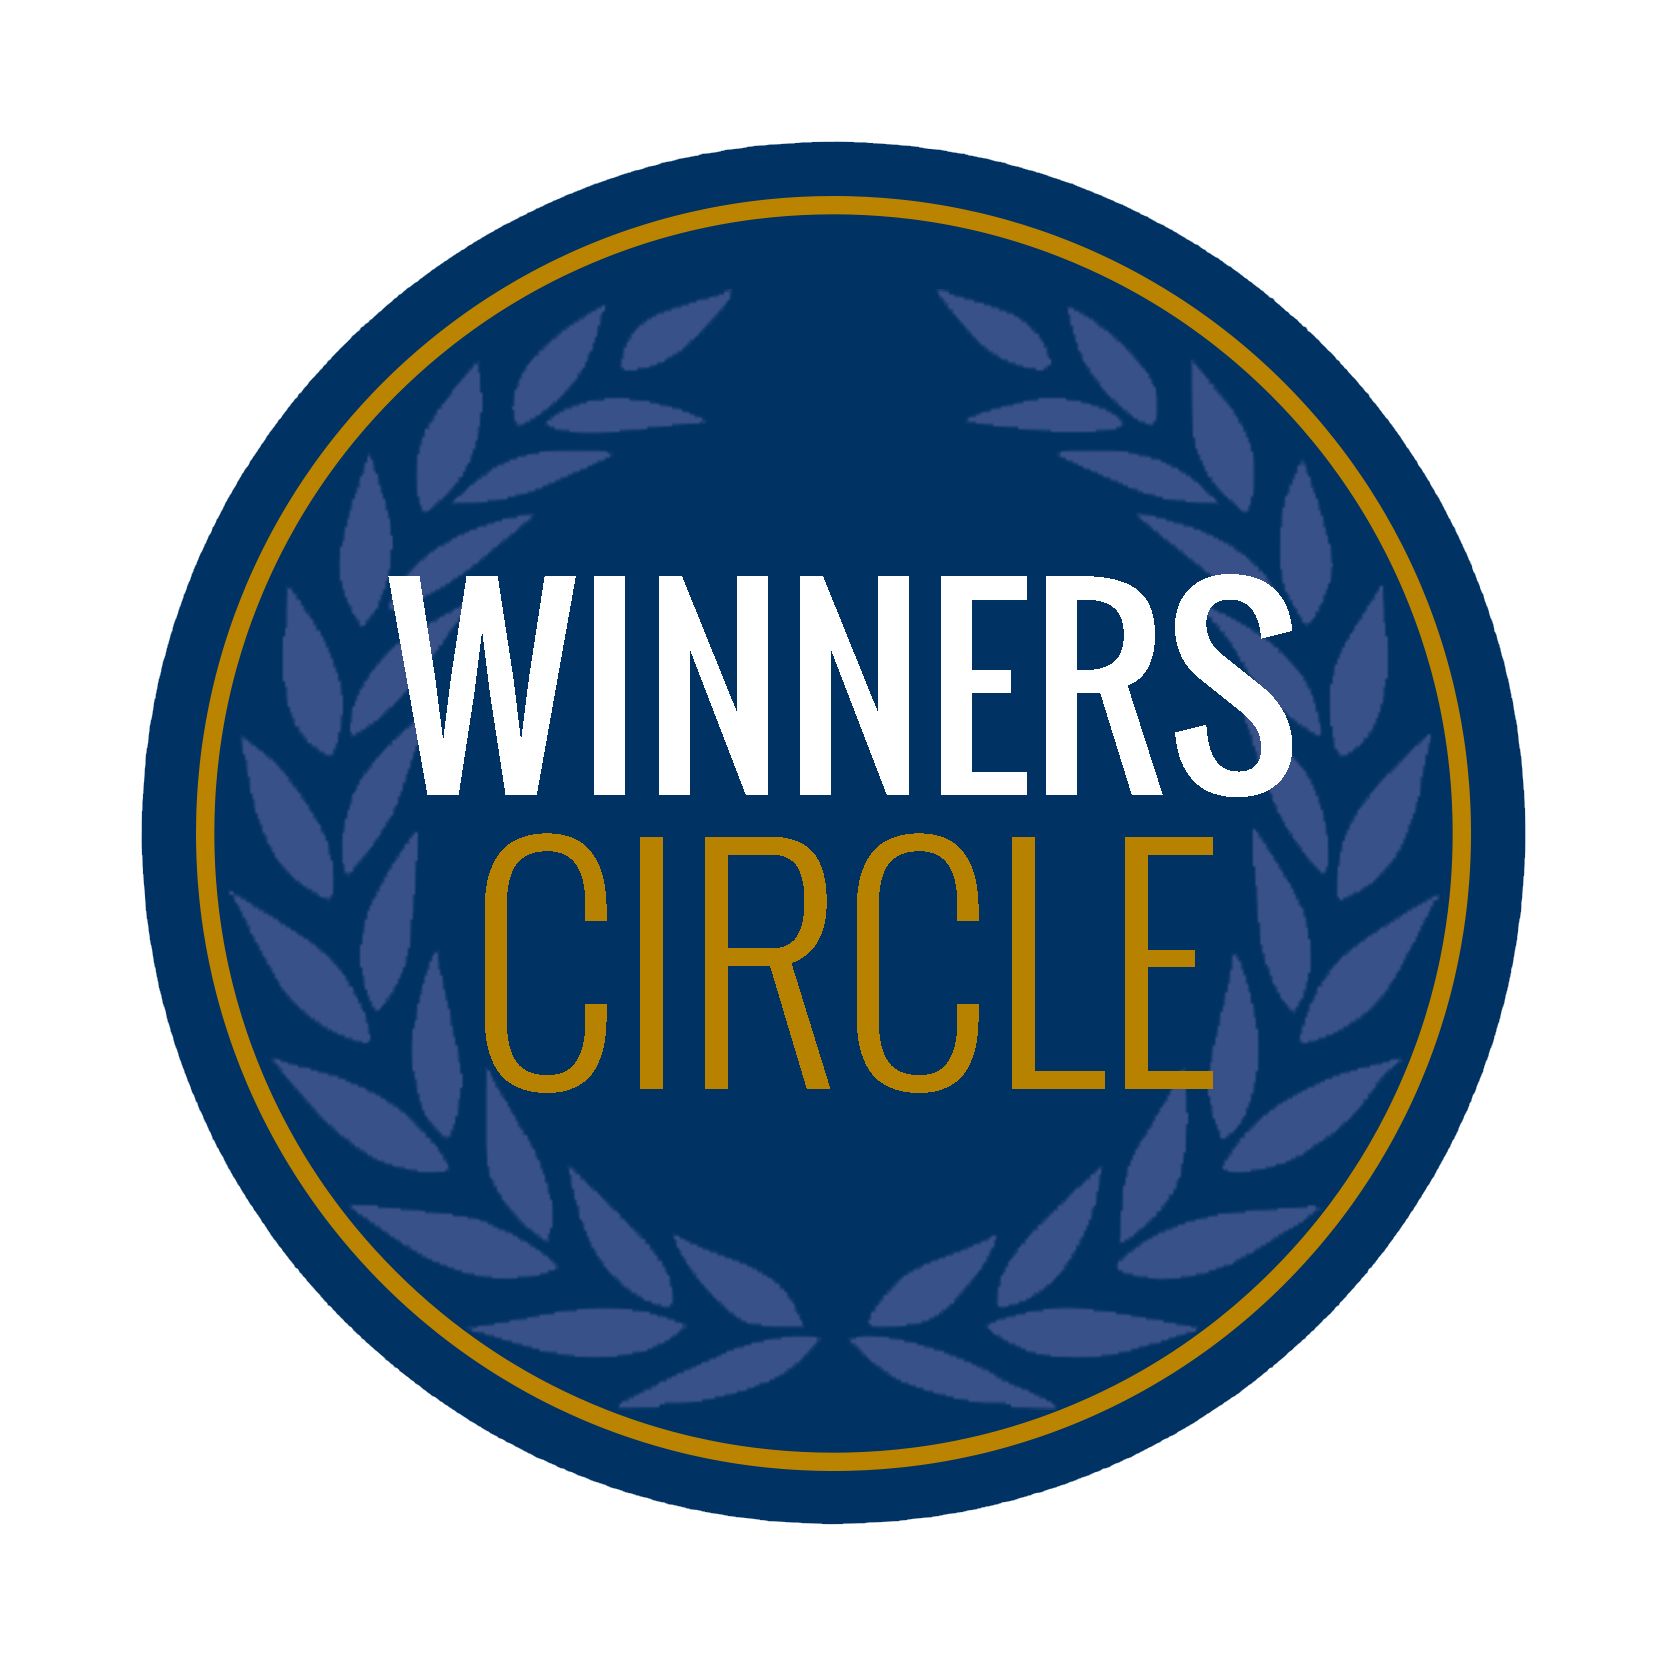 Winners Circle* - We will be awarding $1,500 in cash! Five participants will win $100 each. One person will win $1,000. See schedule for drawing time.